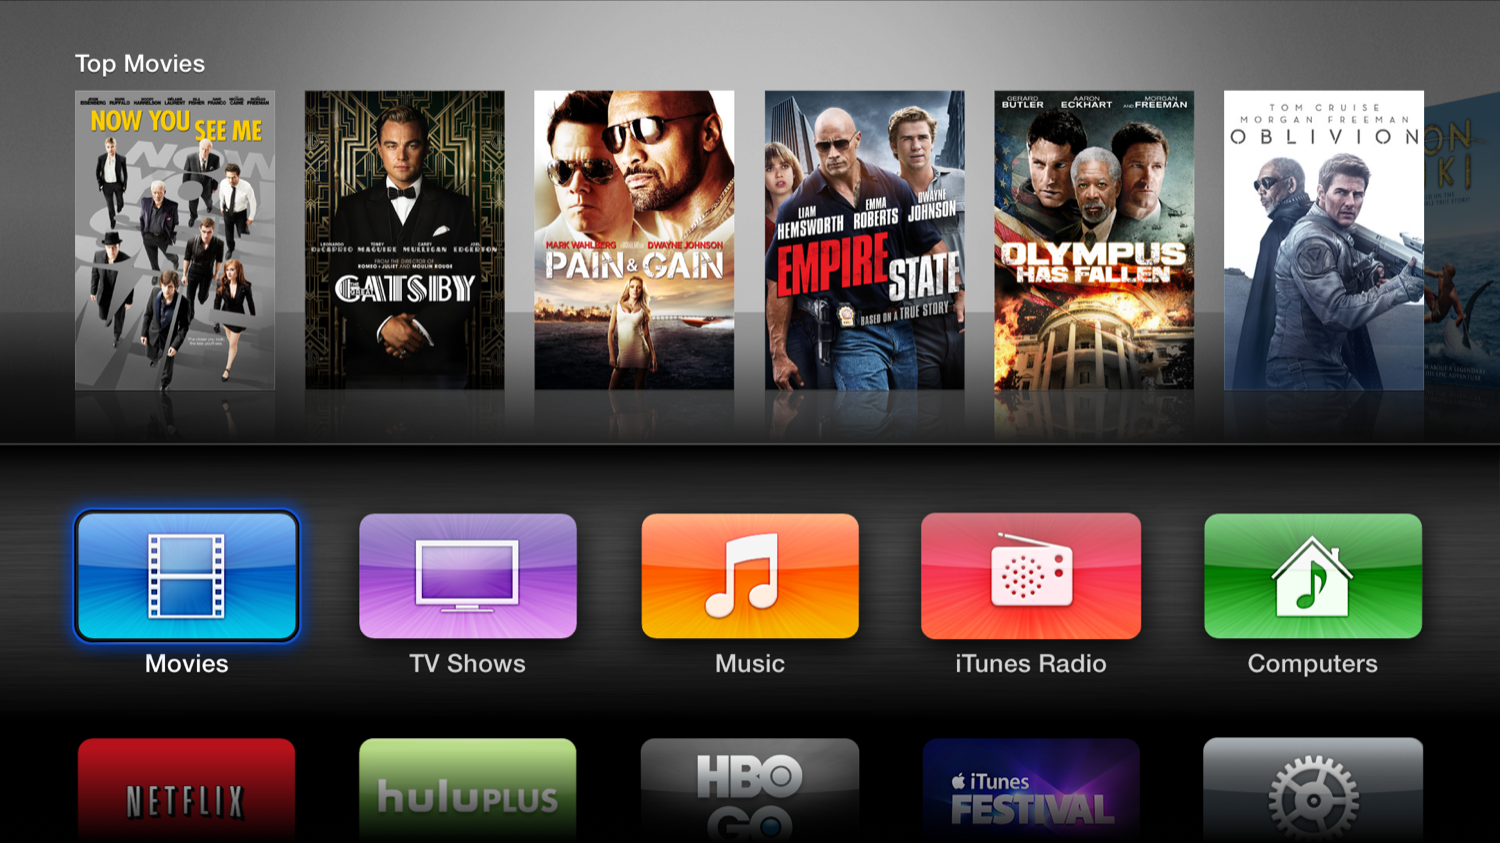 Some of the old Apple TV has lost its ability